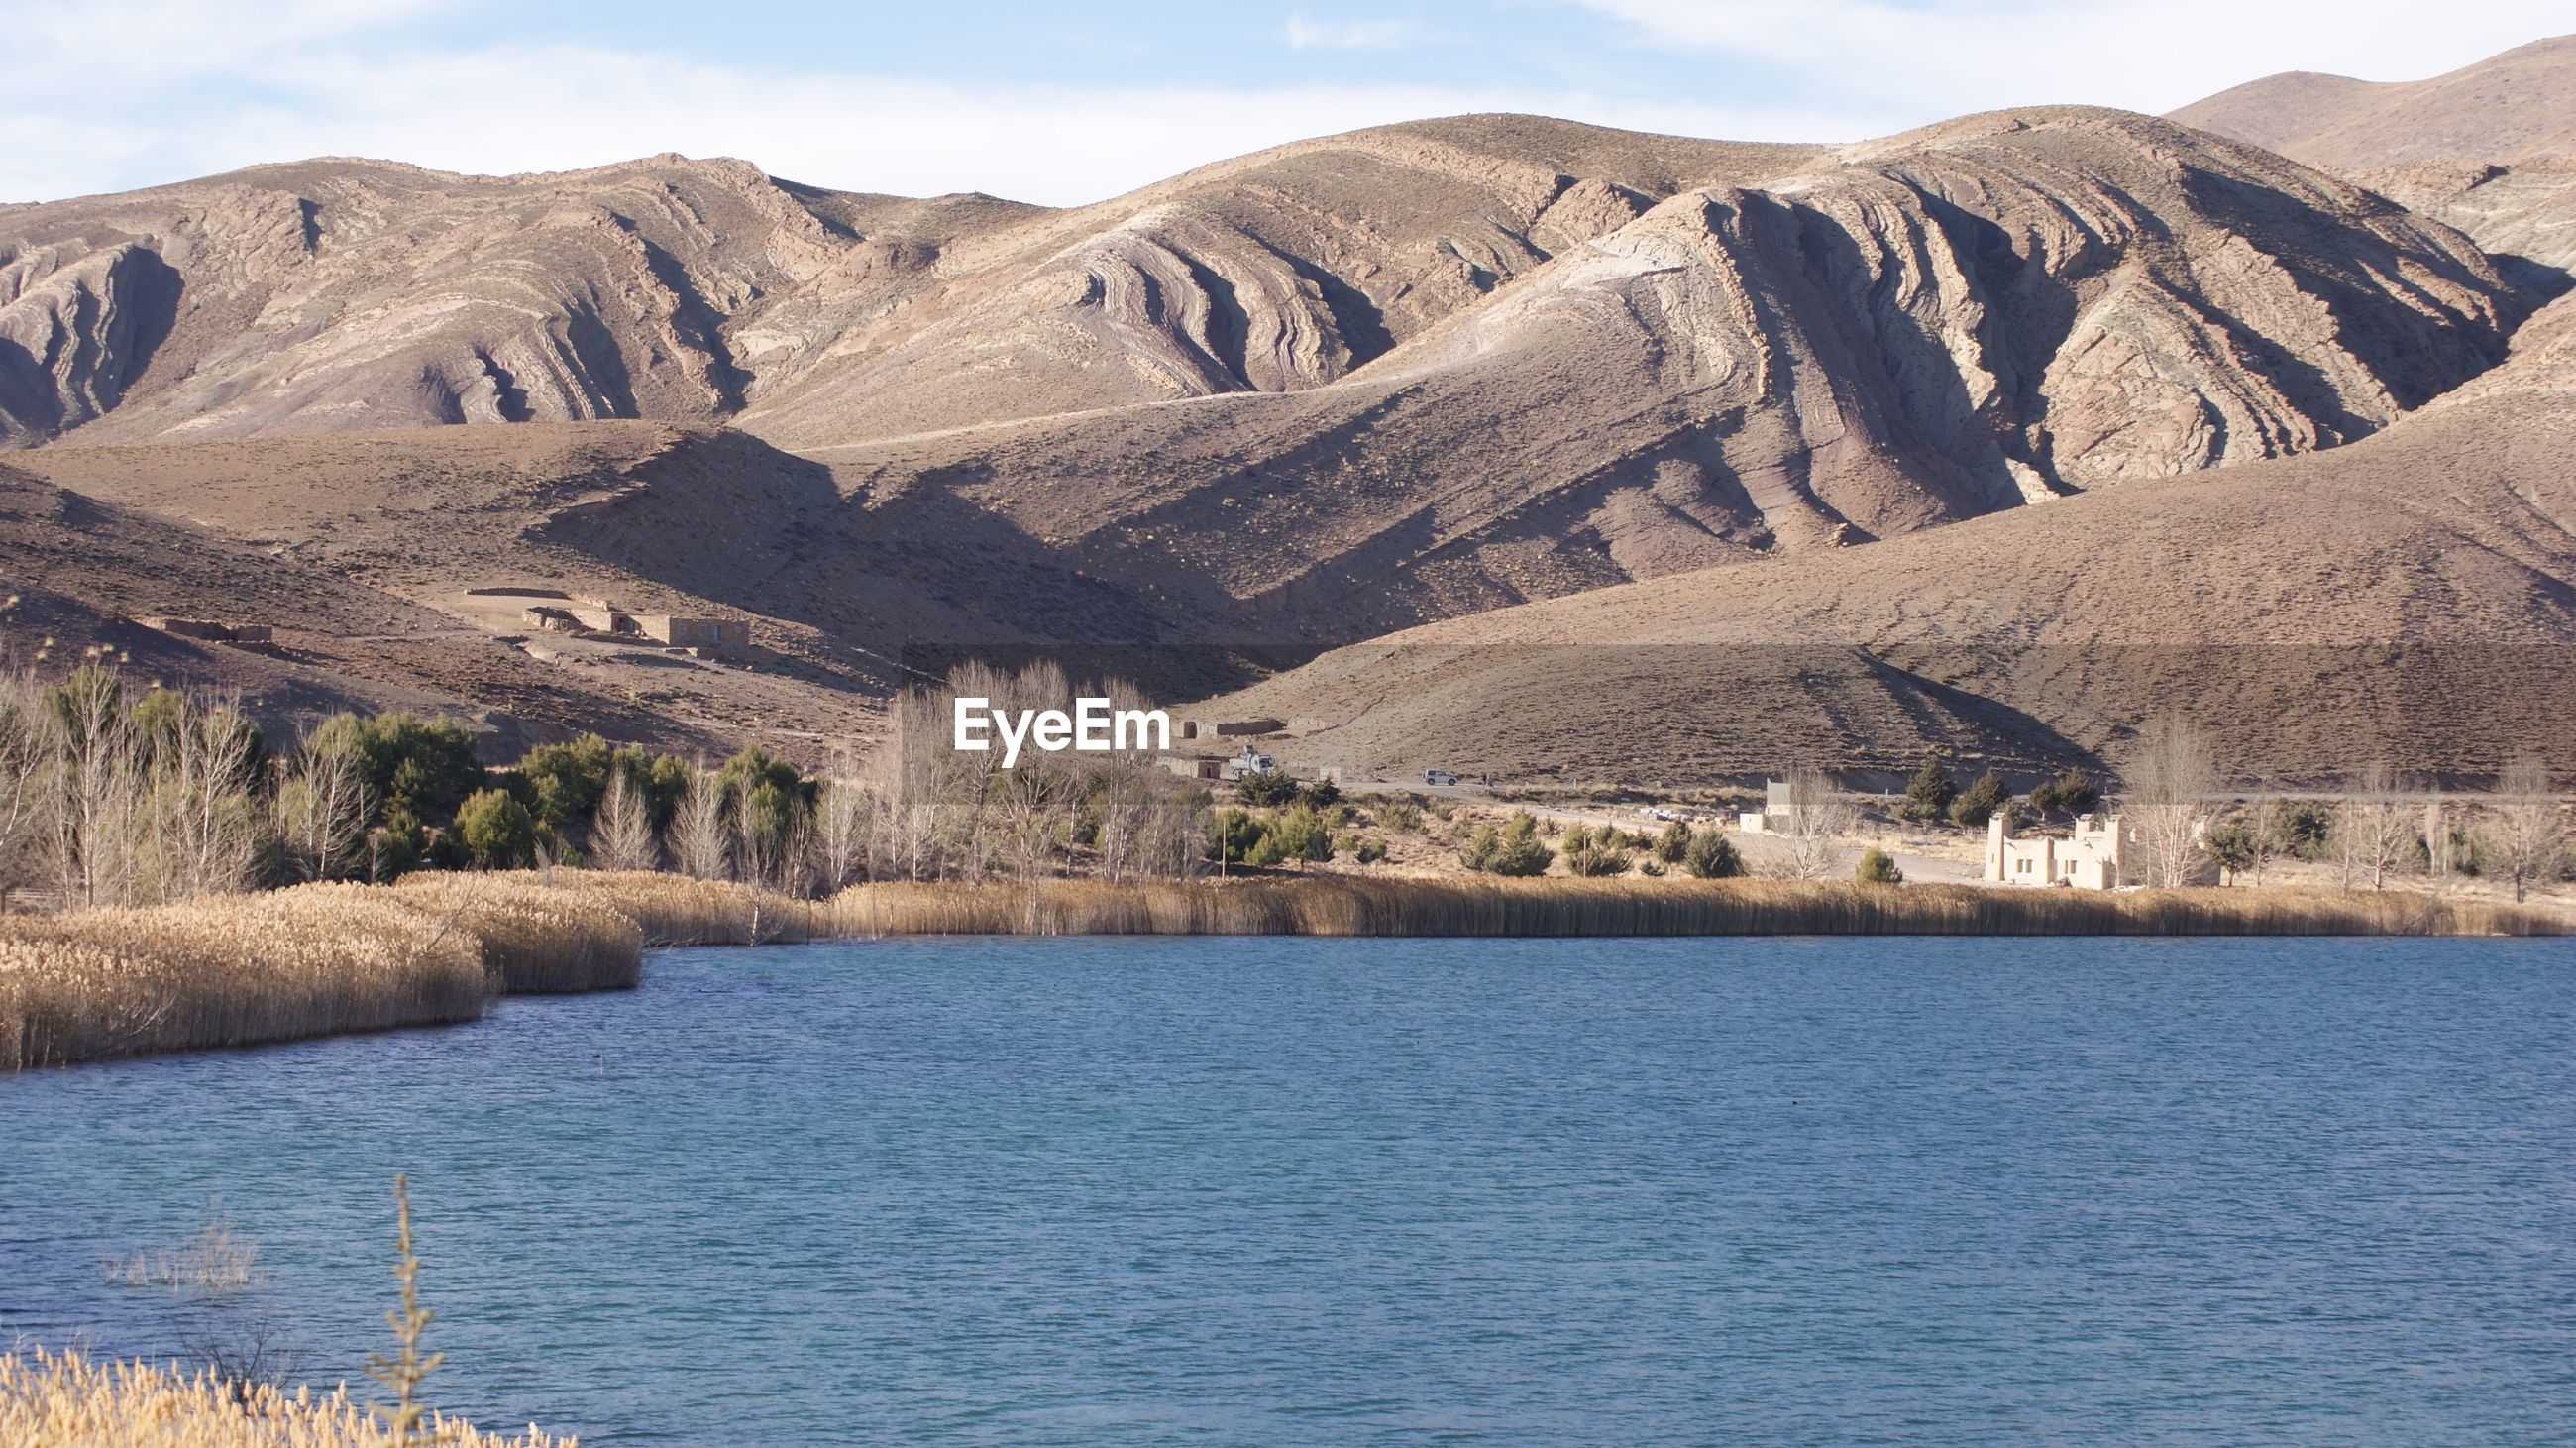 Scenic view of lake in front of mountains